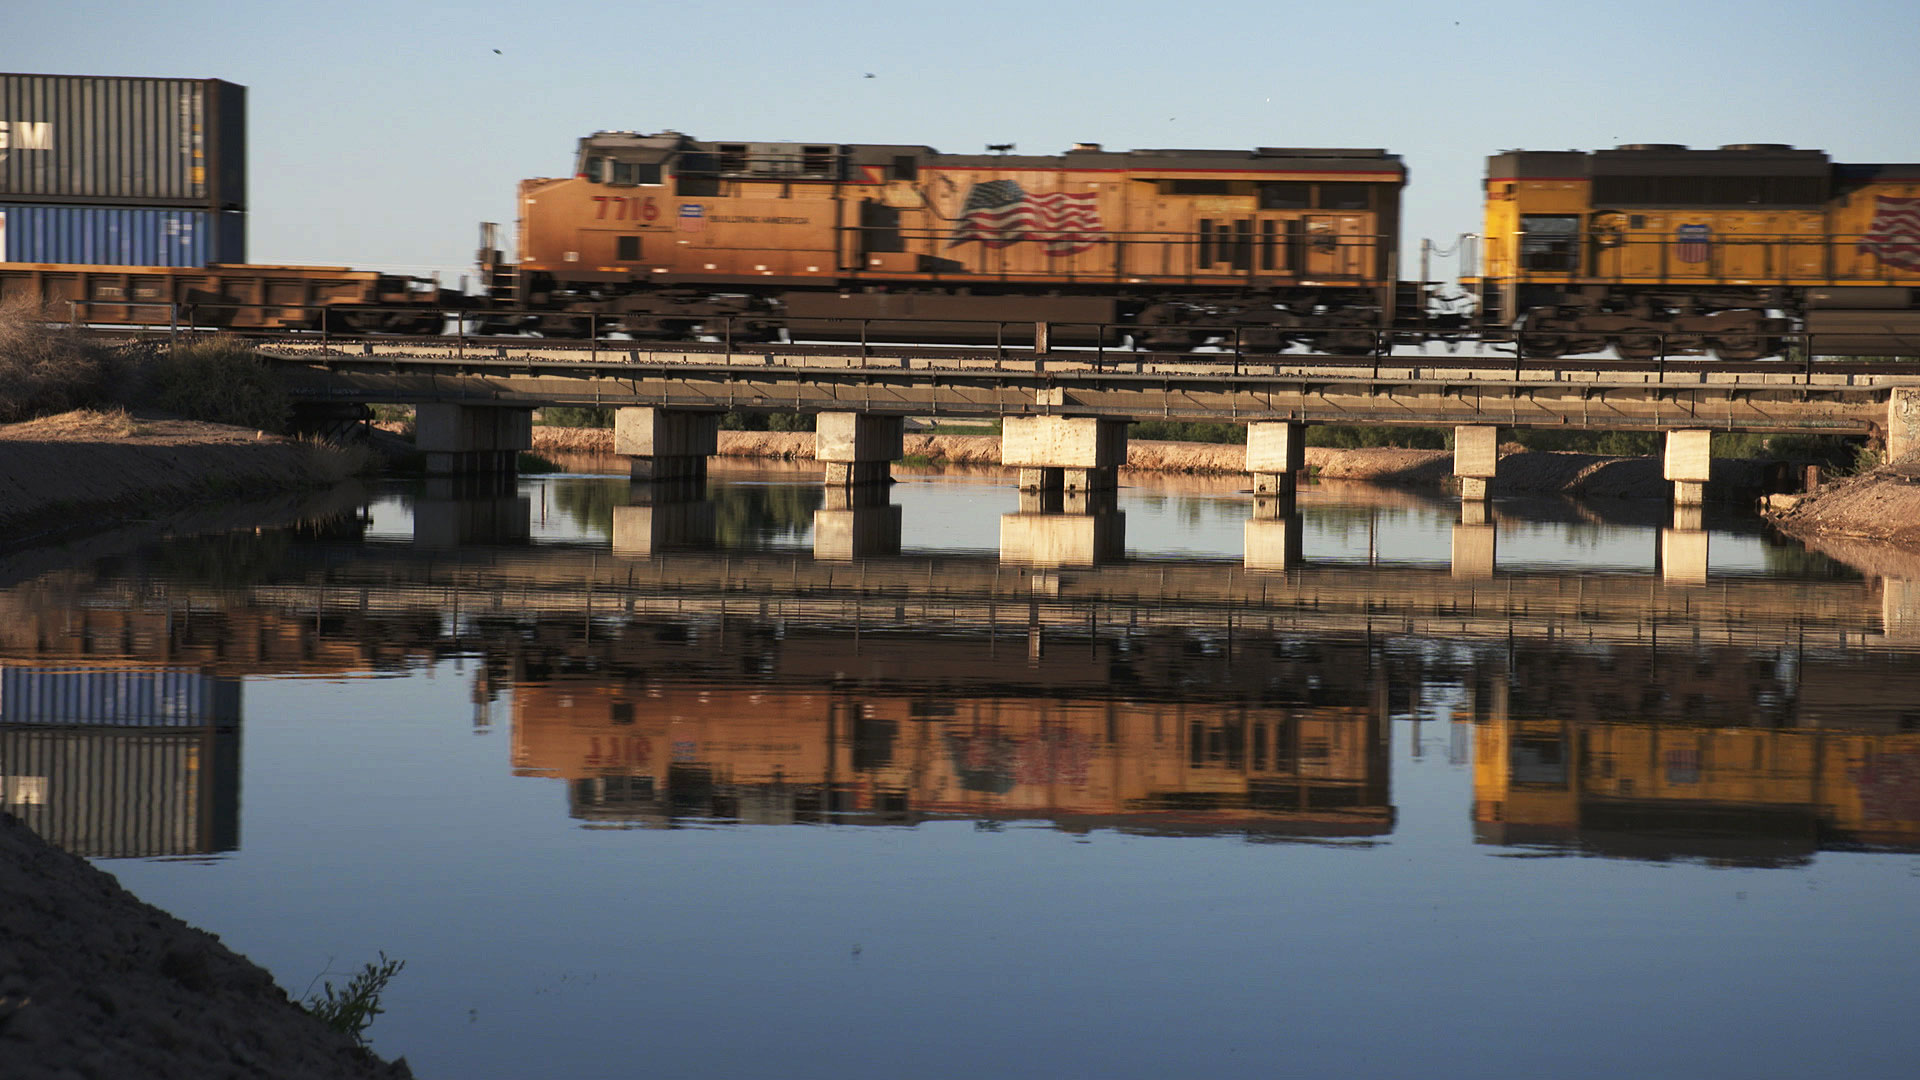 A train passes over the water in Cibola, Arizona. June 2020.